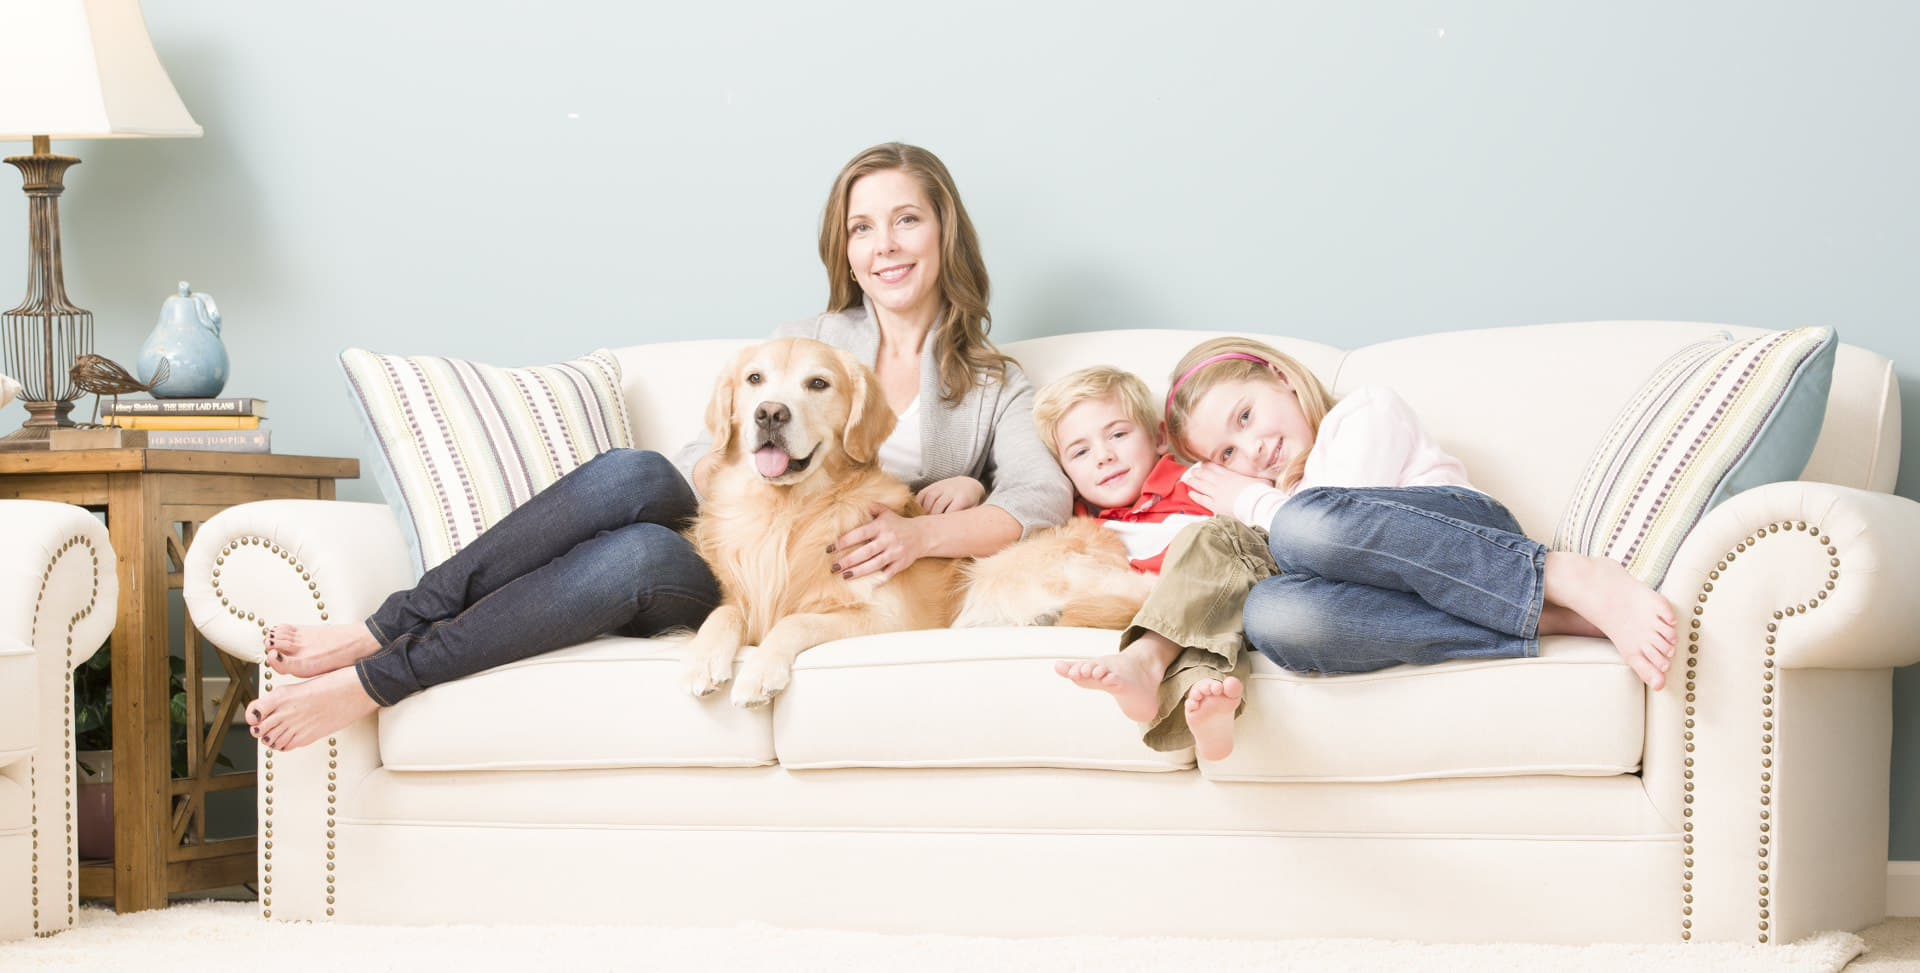 how to clean pet stains on couch